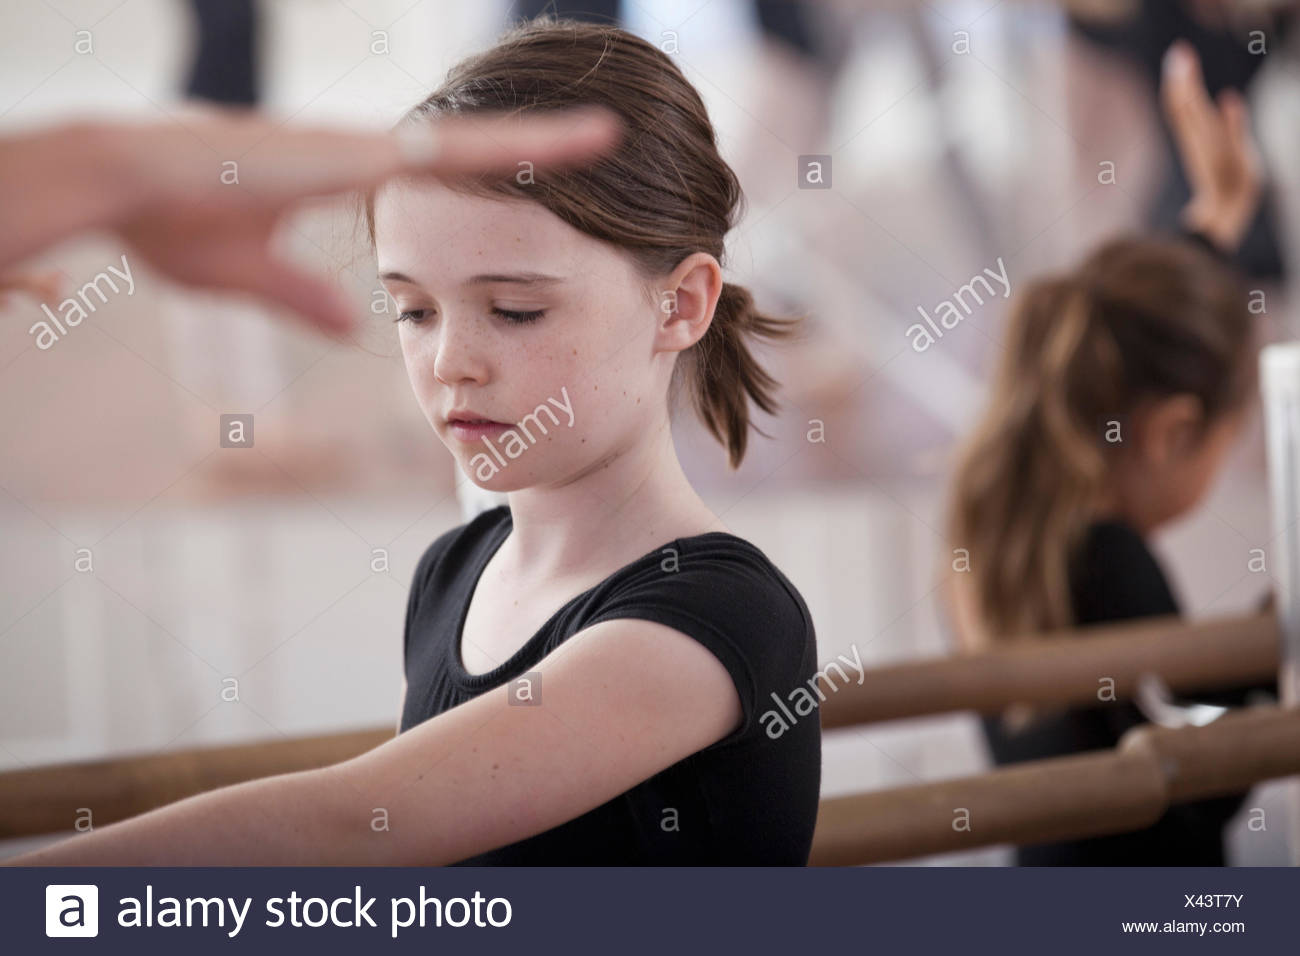 Ballet school girls practicing ballet position at the barre - Stock Image